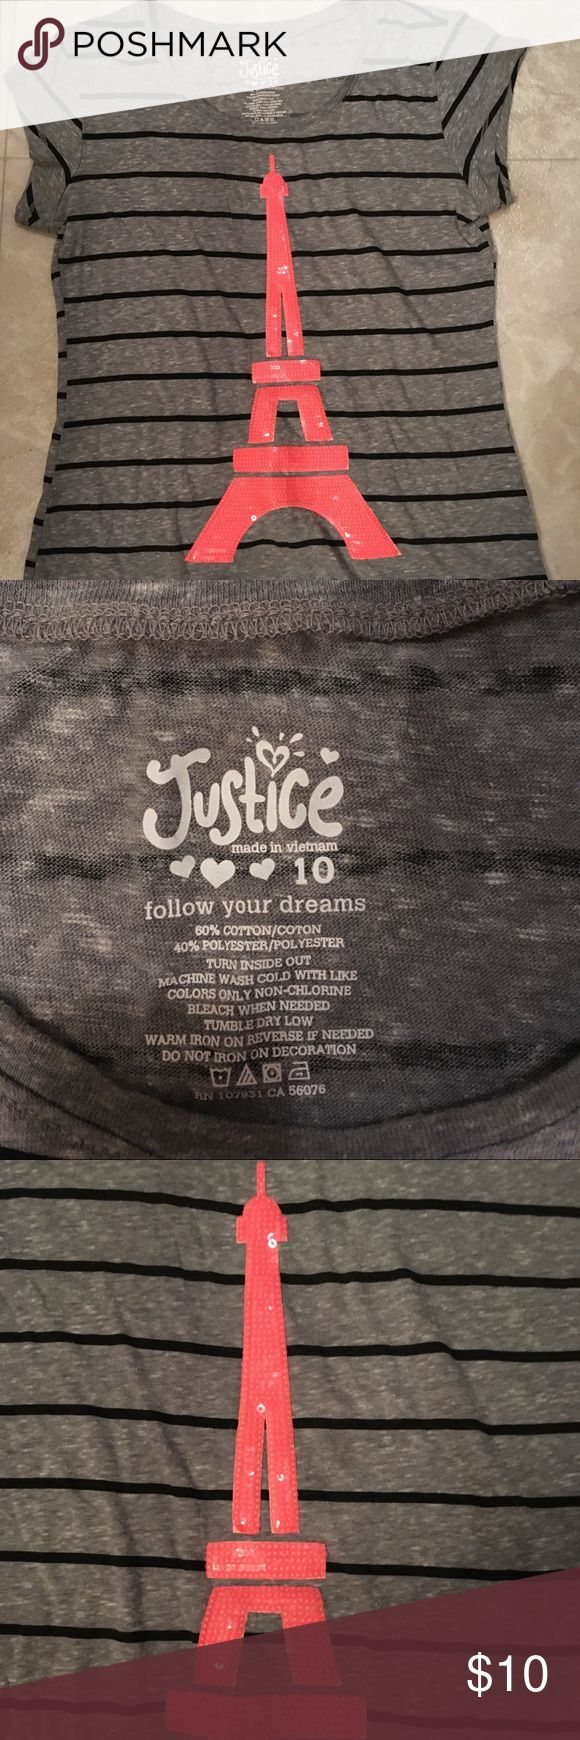 Girls Justice shirt Girls Justice shirt with pink Sequence Eiffel Tower. Used but hardly worn maybe twice. No picks, tears, or stains. Great condition! Justice Shirts & Tops Tees - Short Sleeve